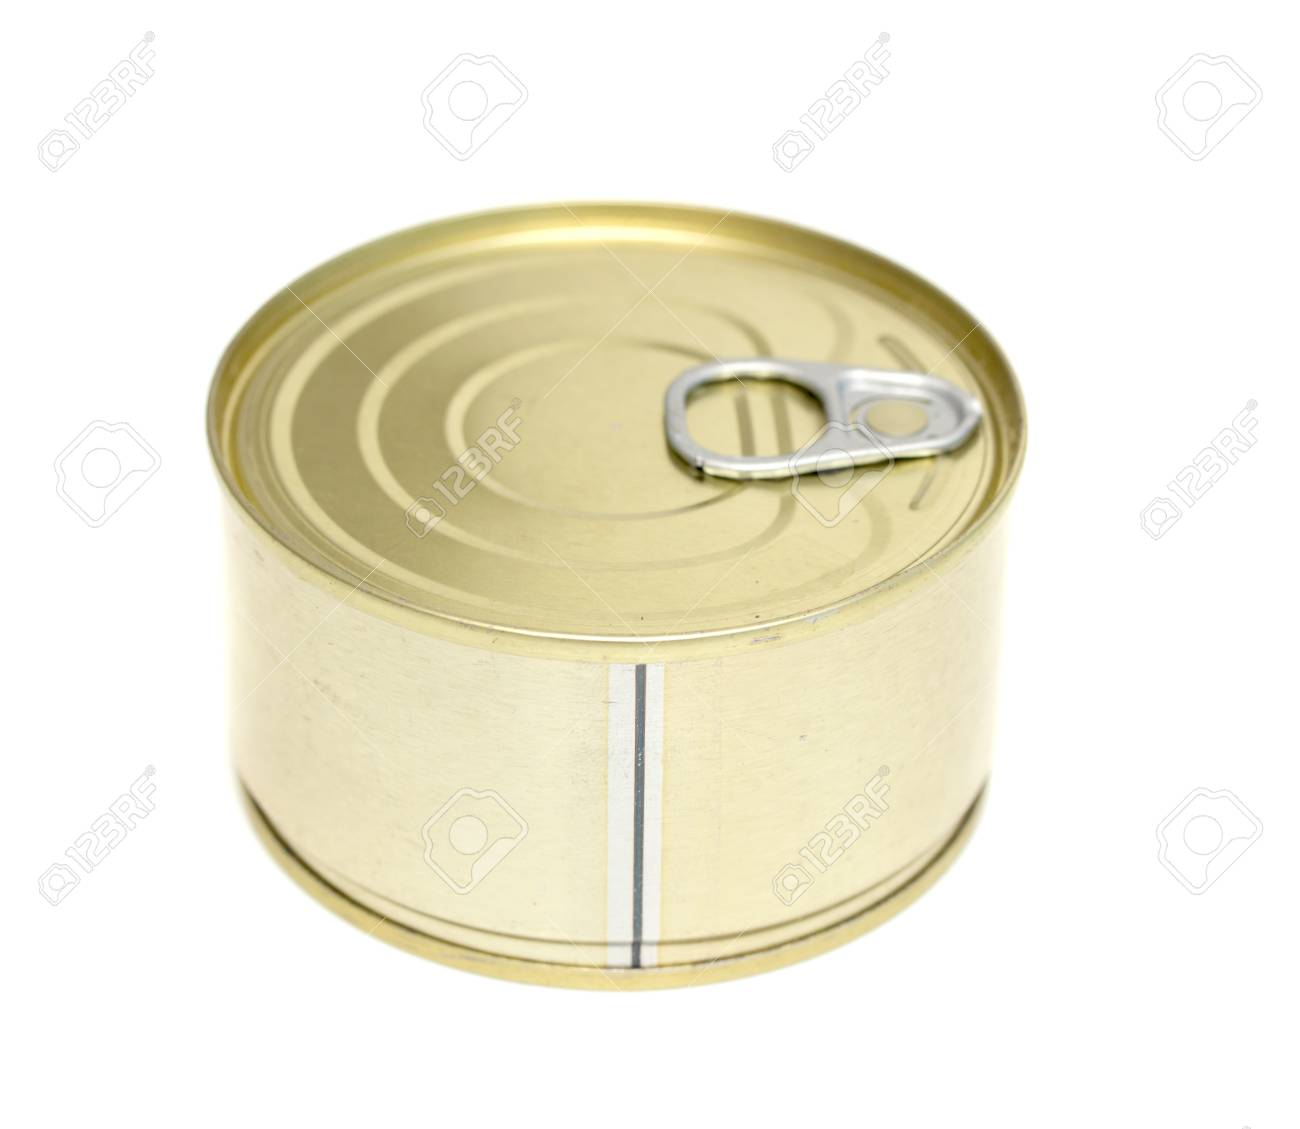 canned meat on a white background Stock Photo - 20813952